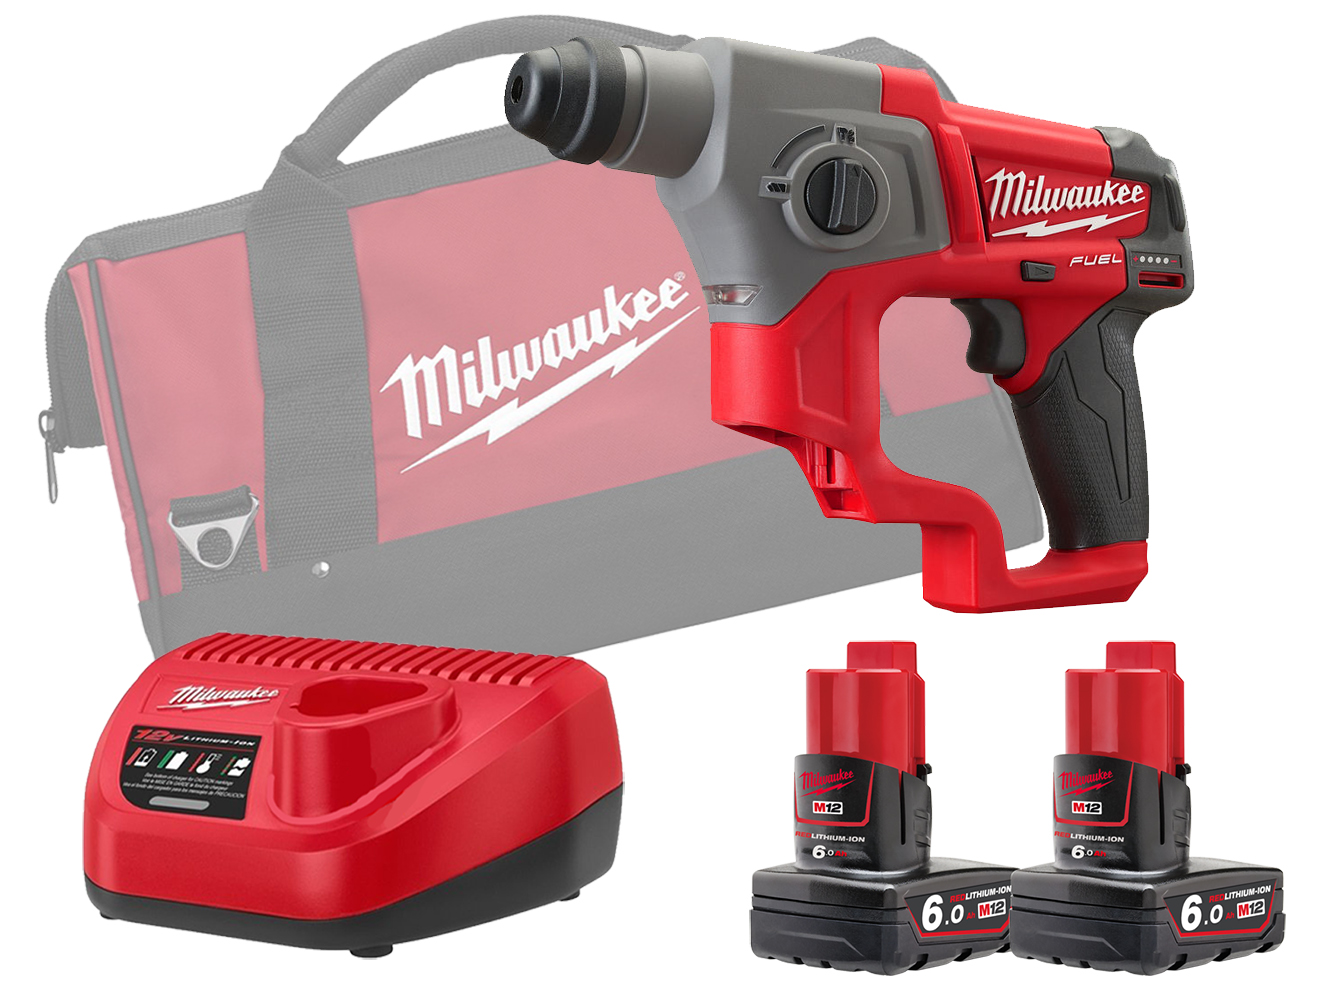 MILWAUKEE 12V FUEL SDS 2 MODE HAMMER -  M12CH - 6.0AH PACK